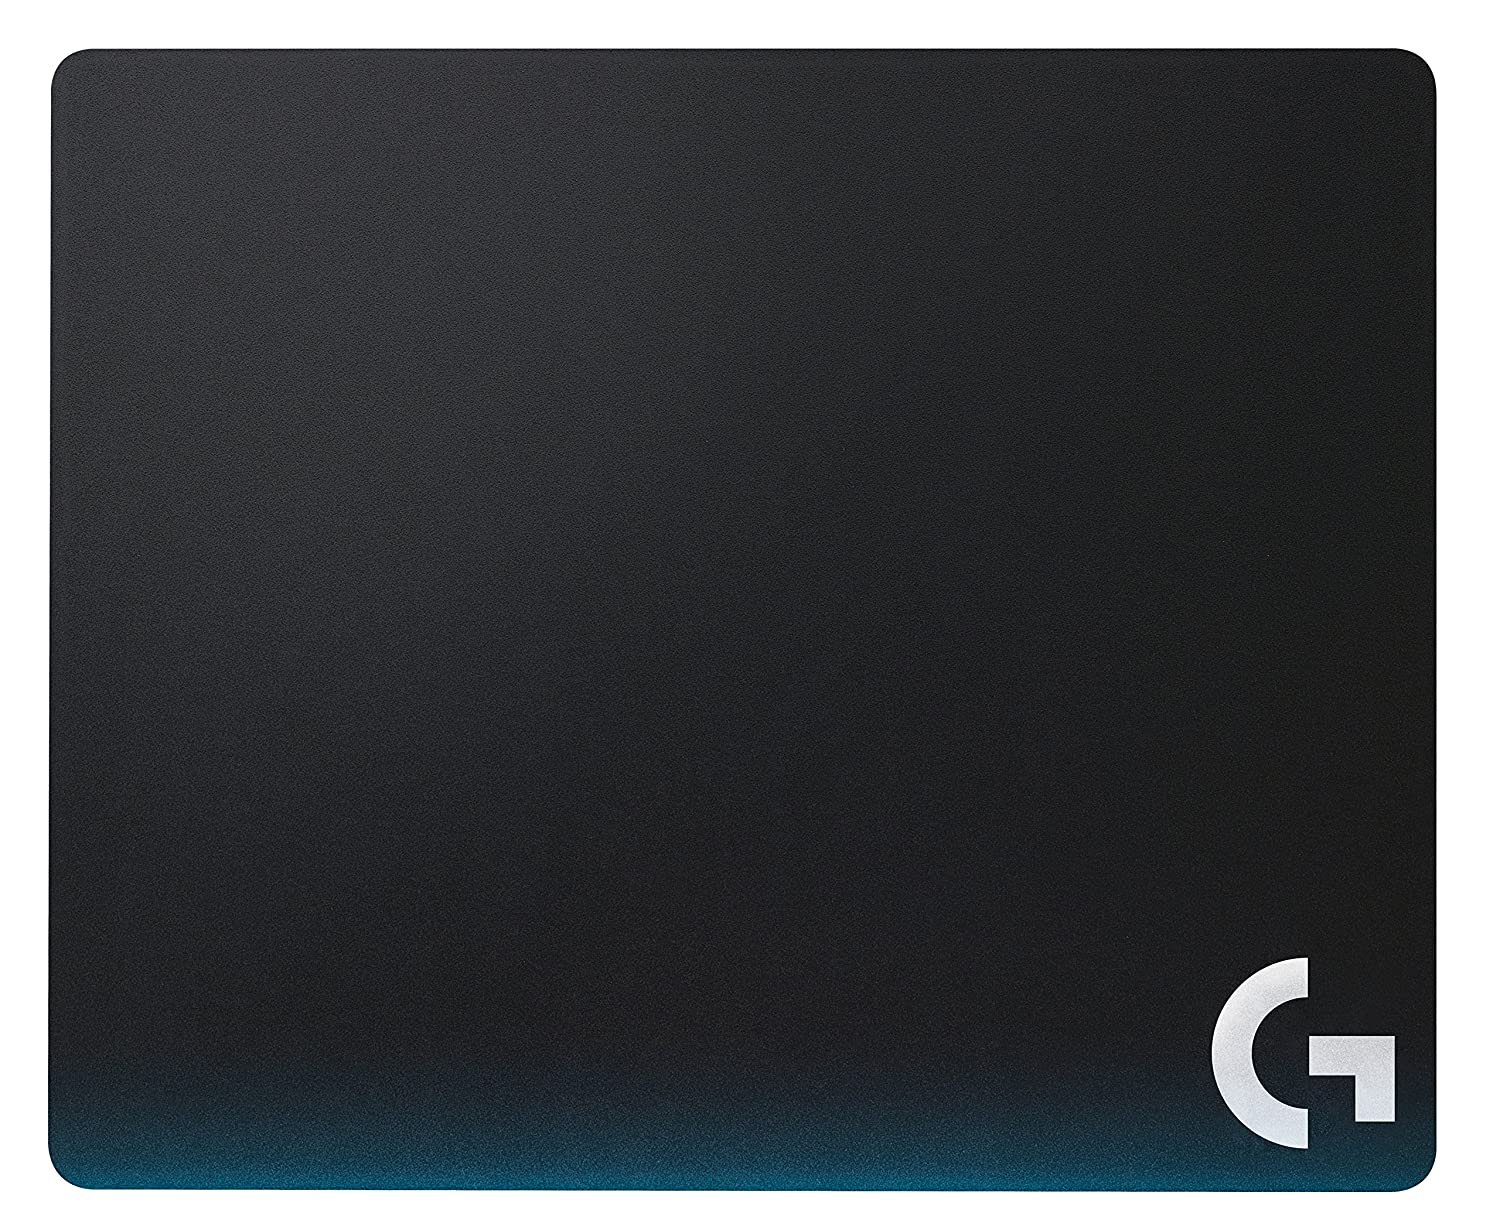 top 5 gaming mouse pads for 2021